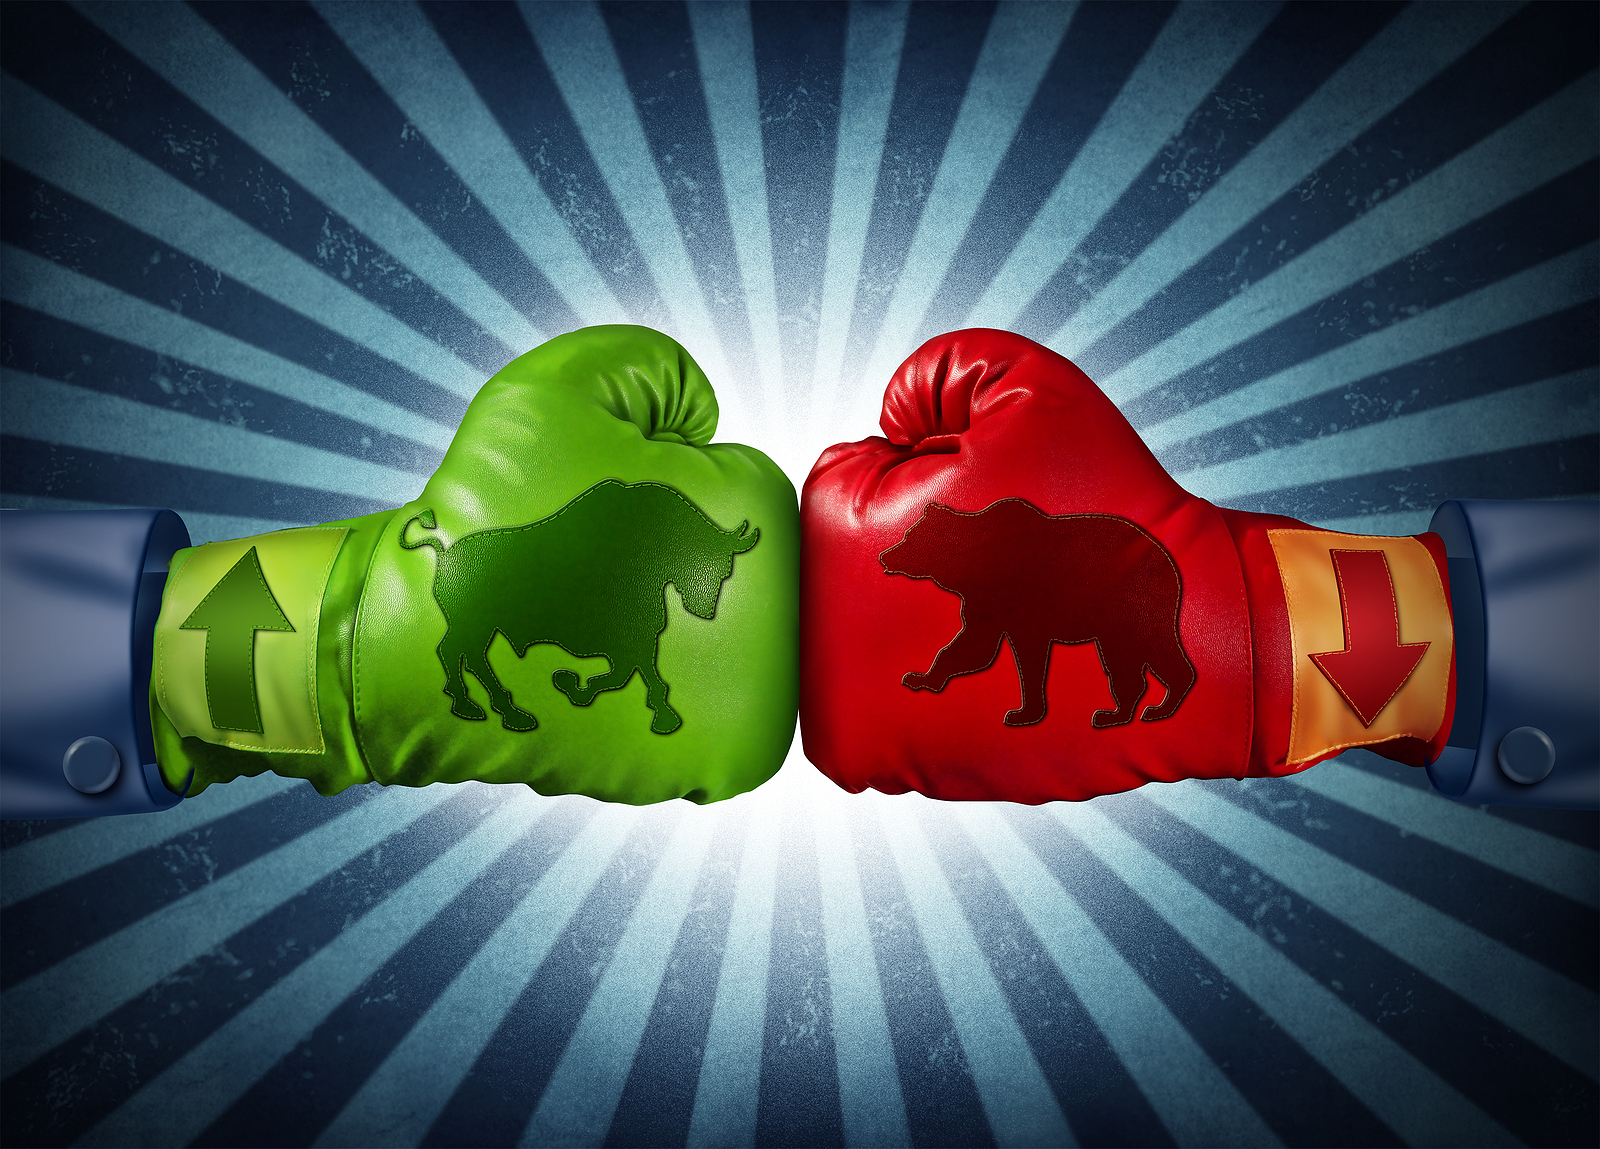 Bull and bear boxing gloves